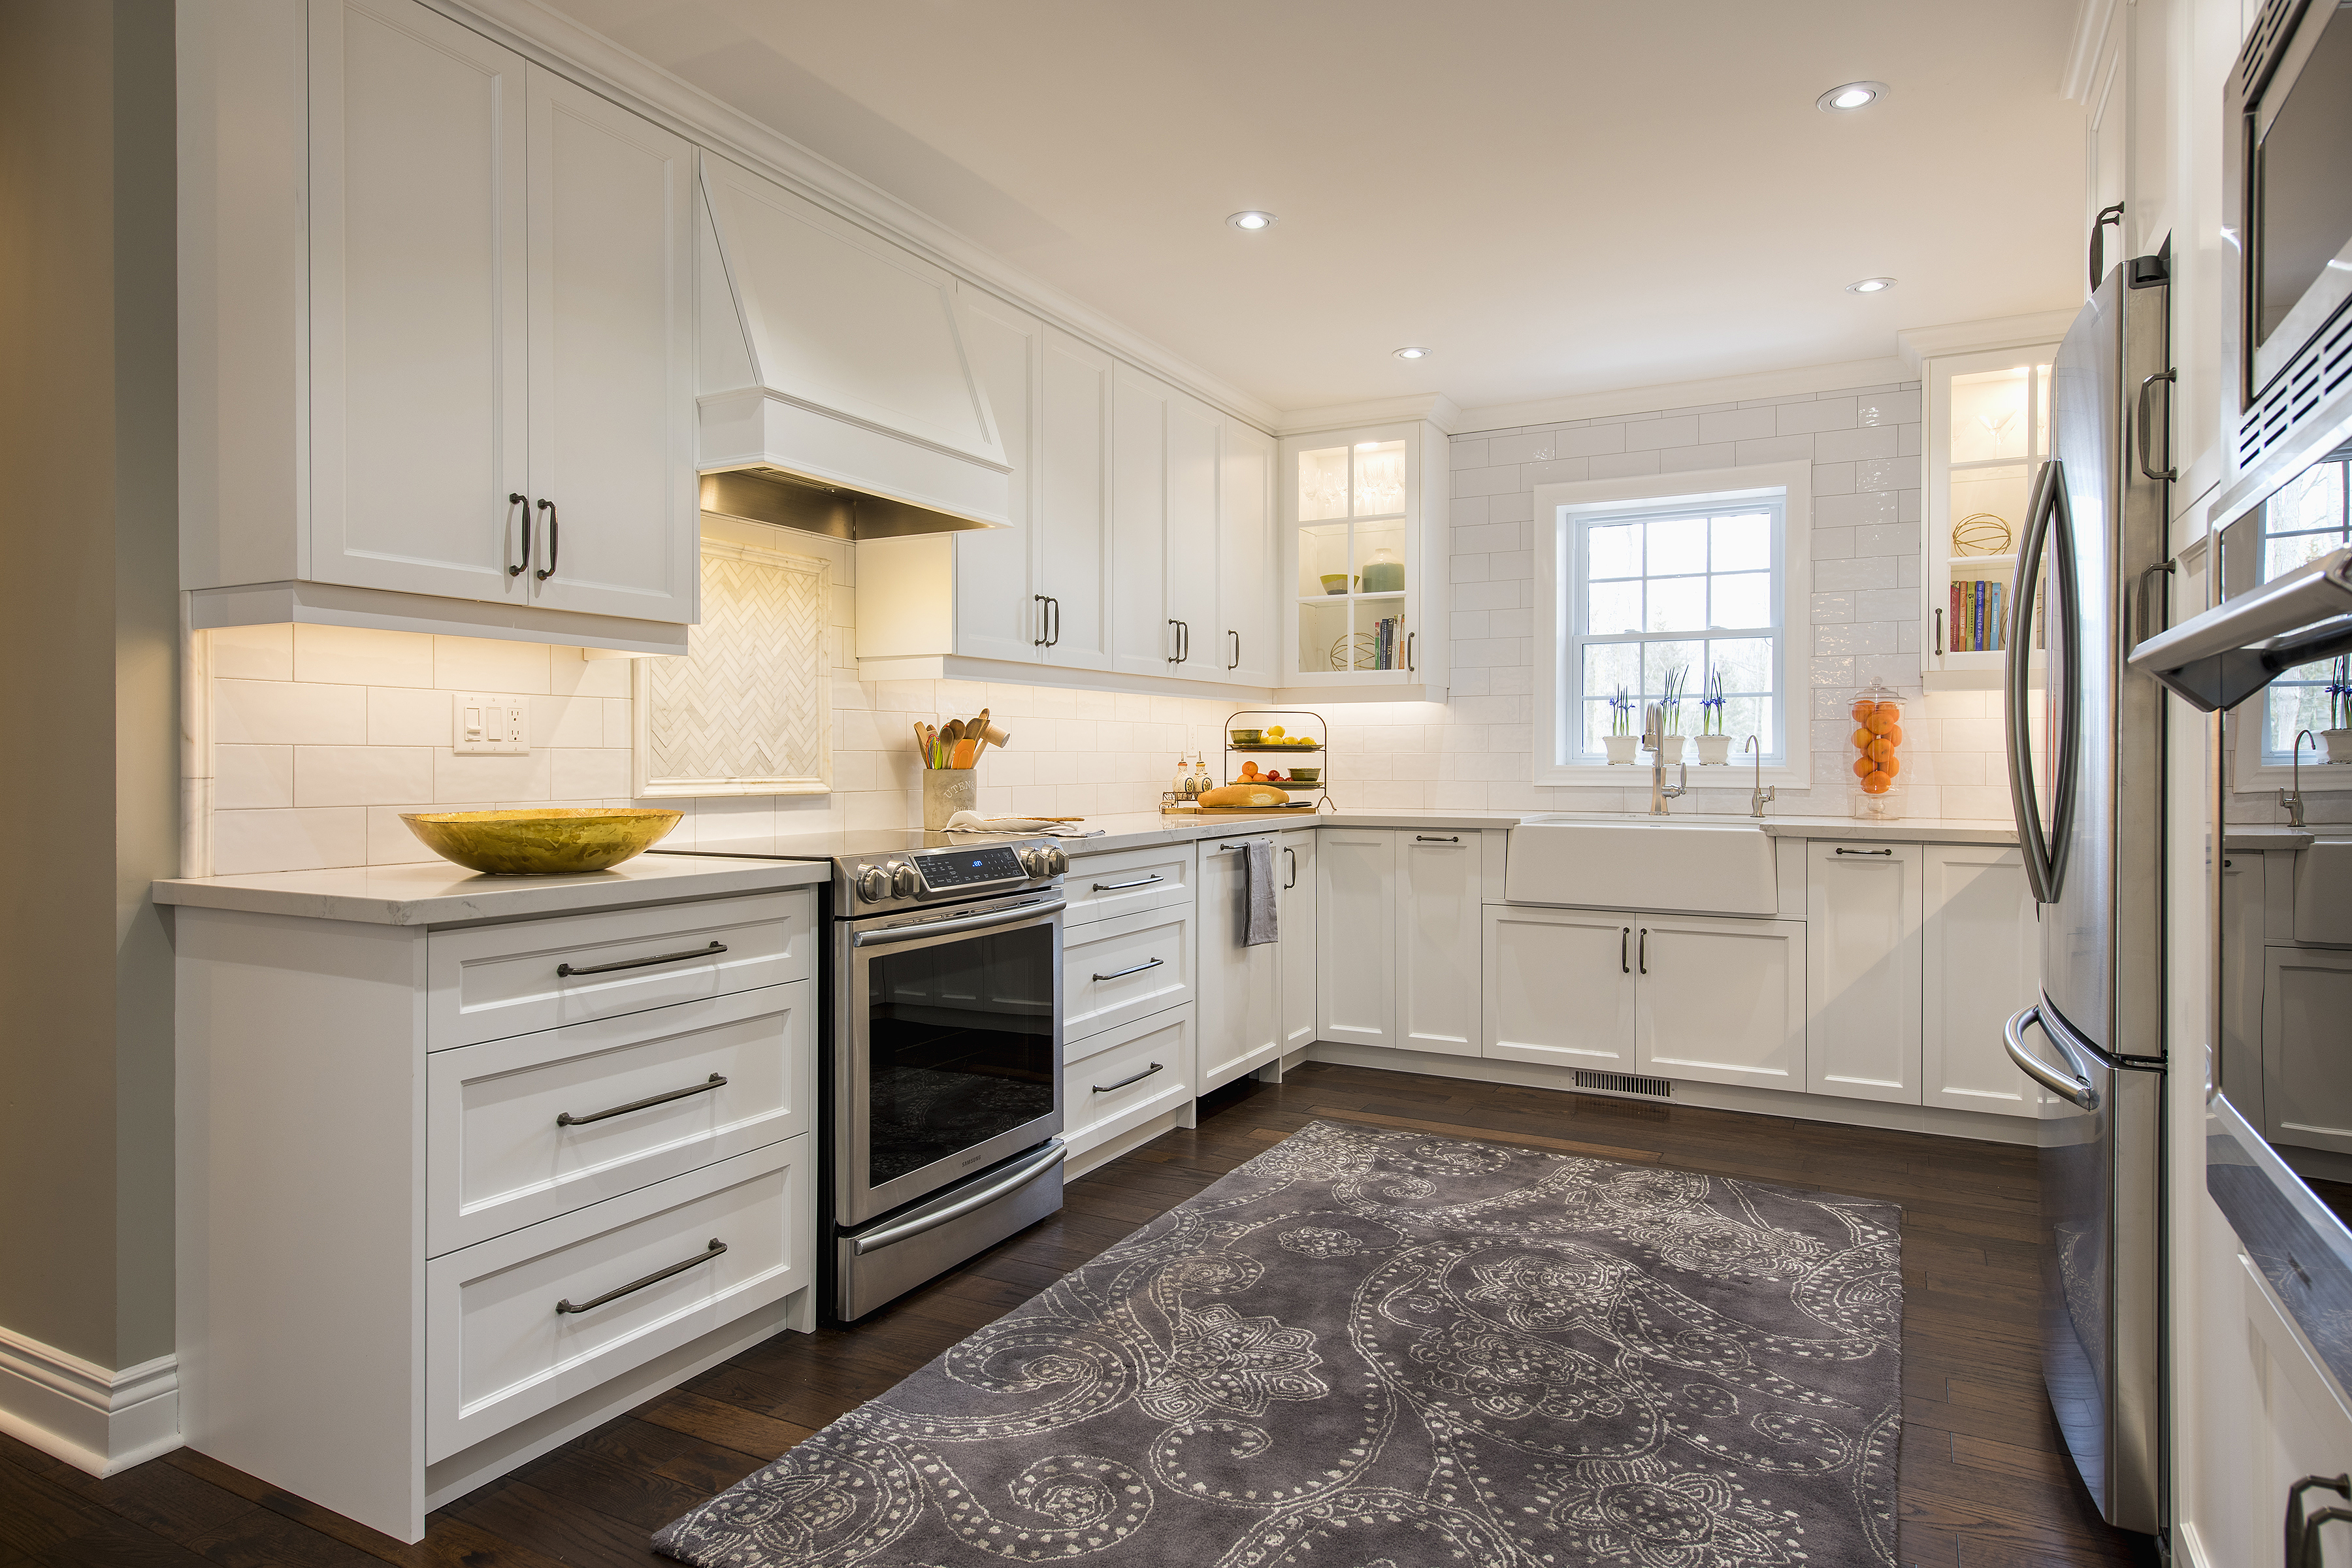 Ontario Kitchens | Kitchens and more